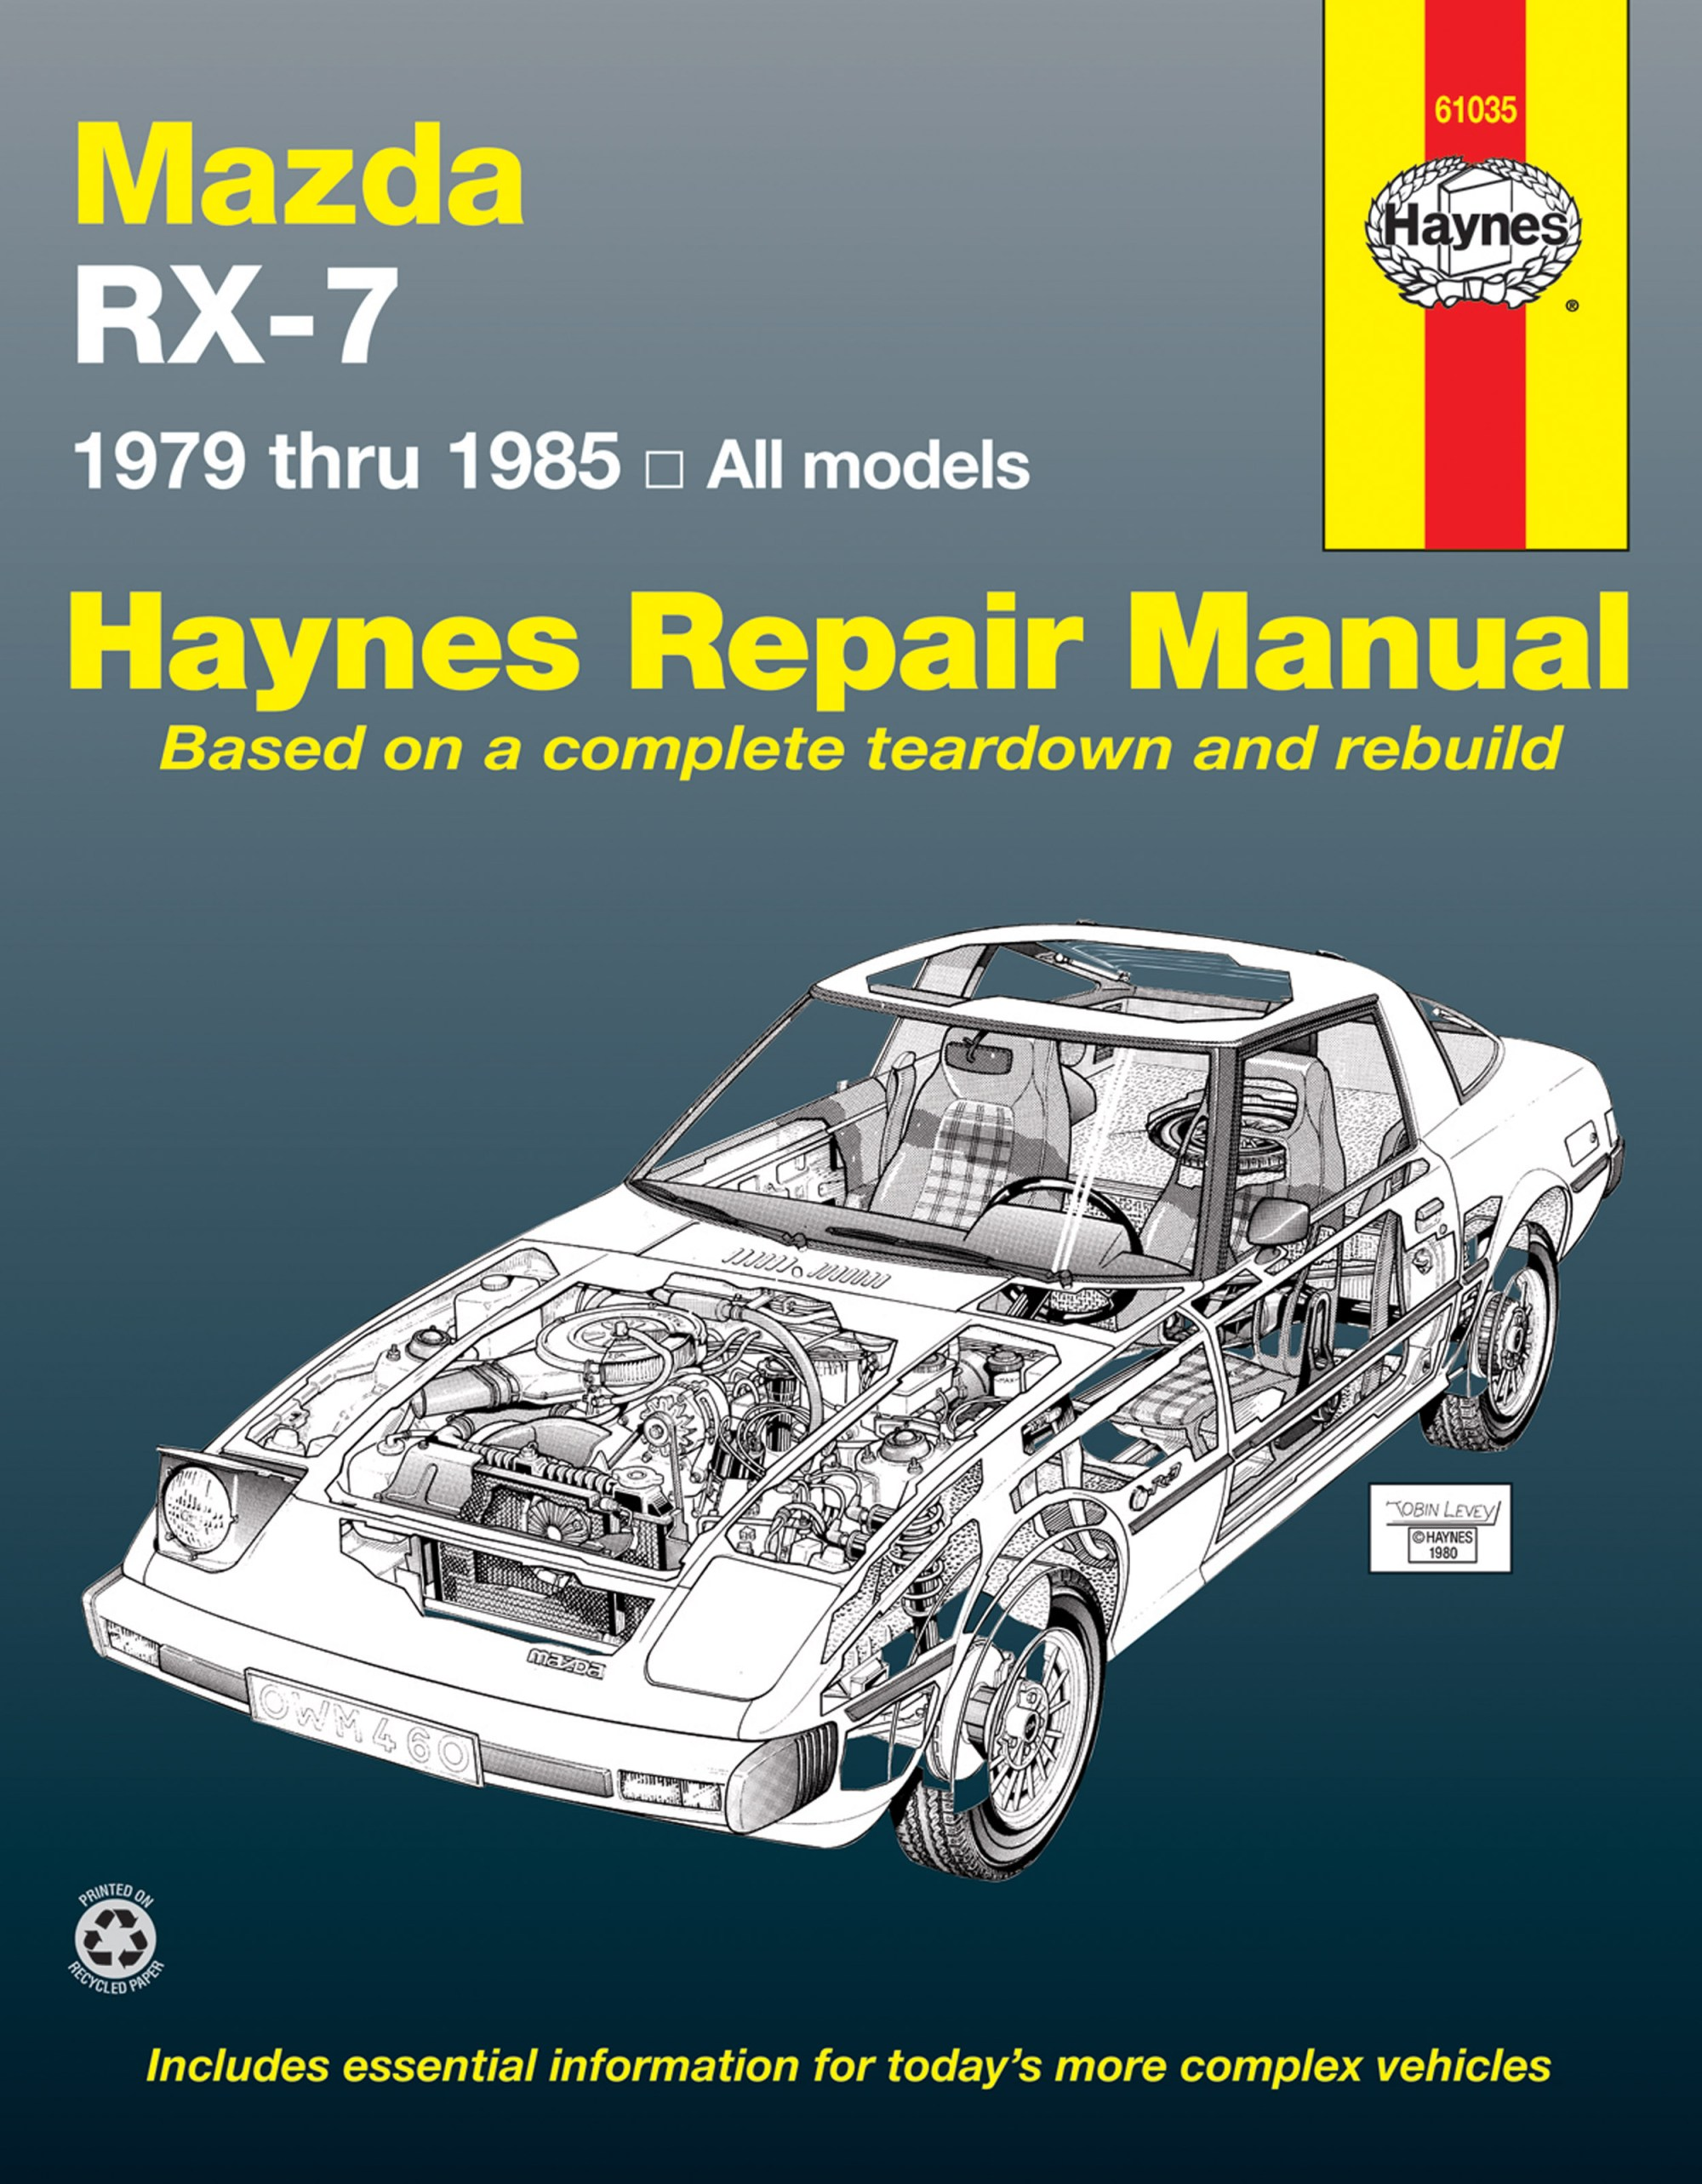 hight resolution of rx 7 haynes manualsprinted manual enlarge mazda rx 7 for